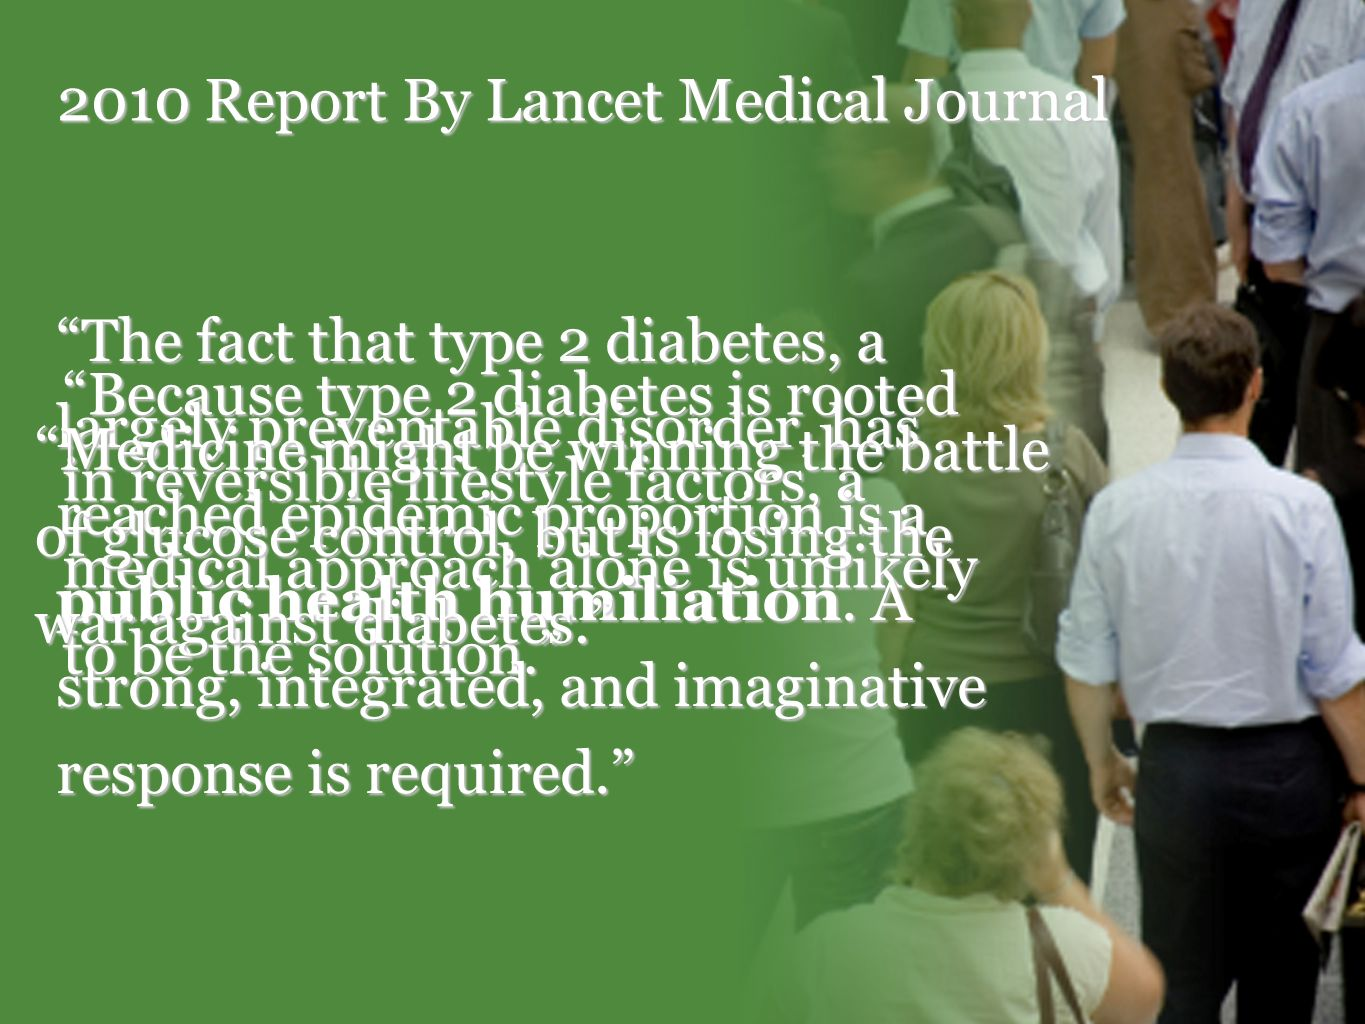 2010 Report By Lancet Medical Journal Because type 2 diabetes is rooted in reversible lifestyle factors, a medical approach alone is unlikely to be the solution.